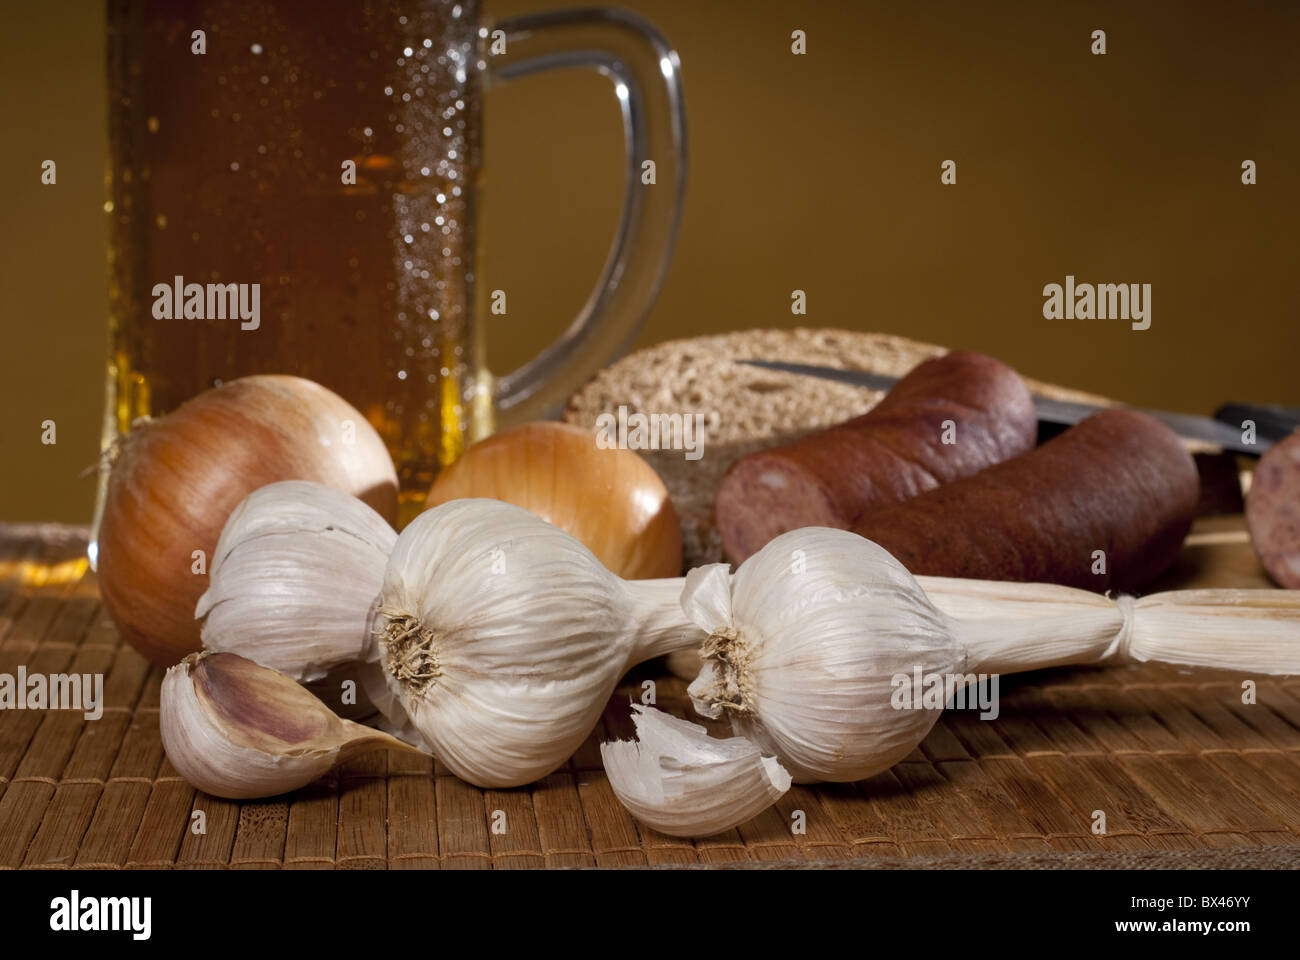 glas of beer with garlic - Stock Image